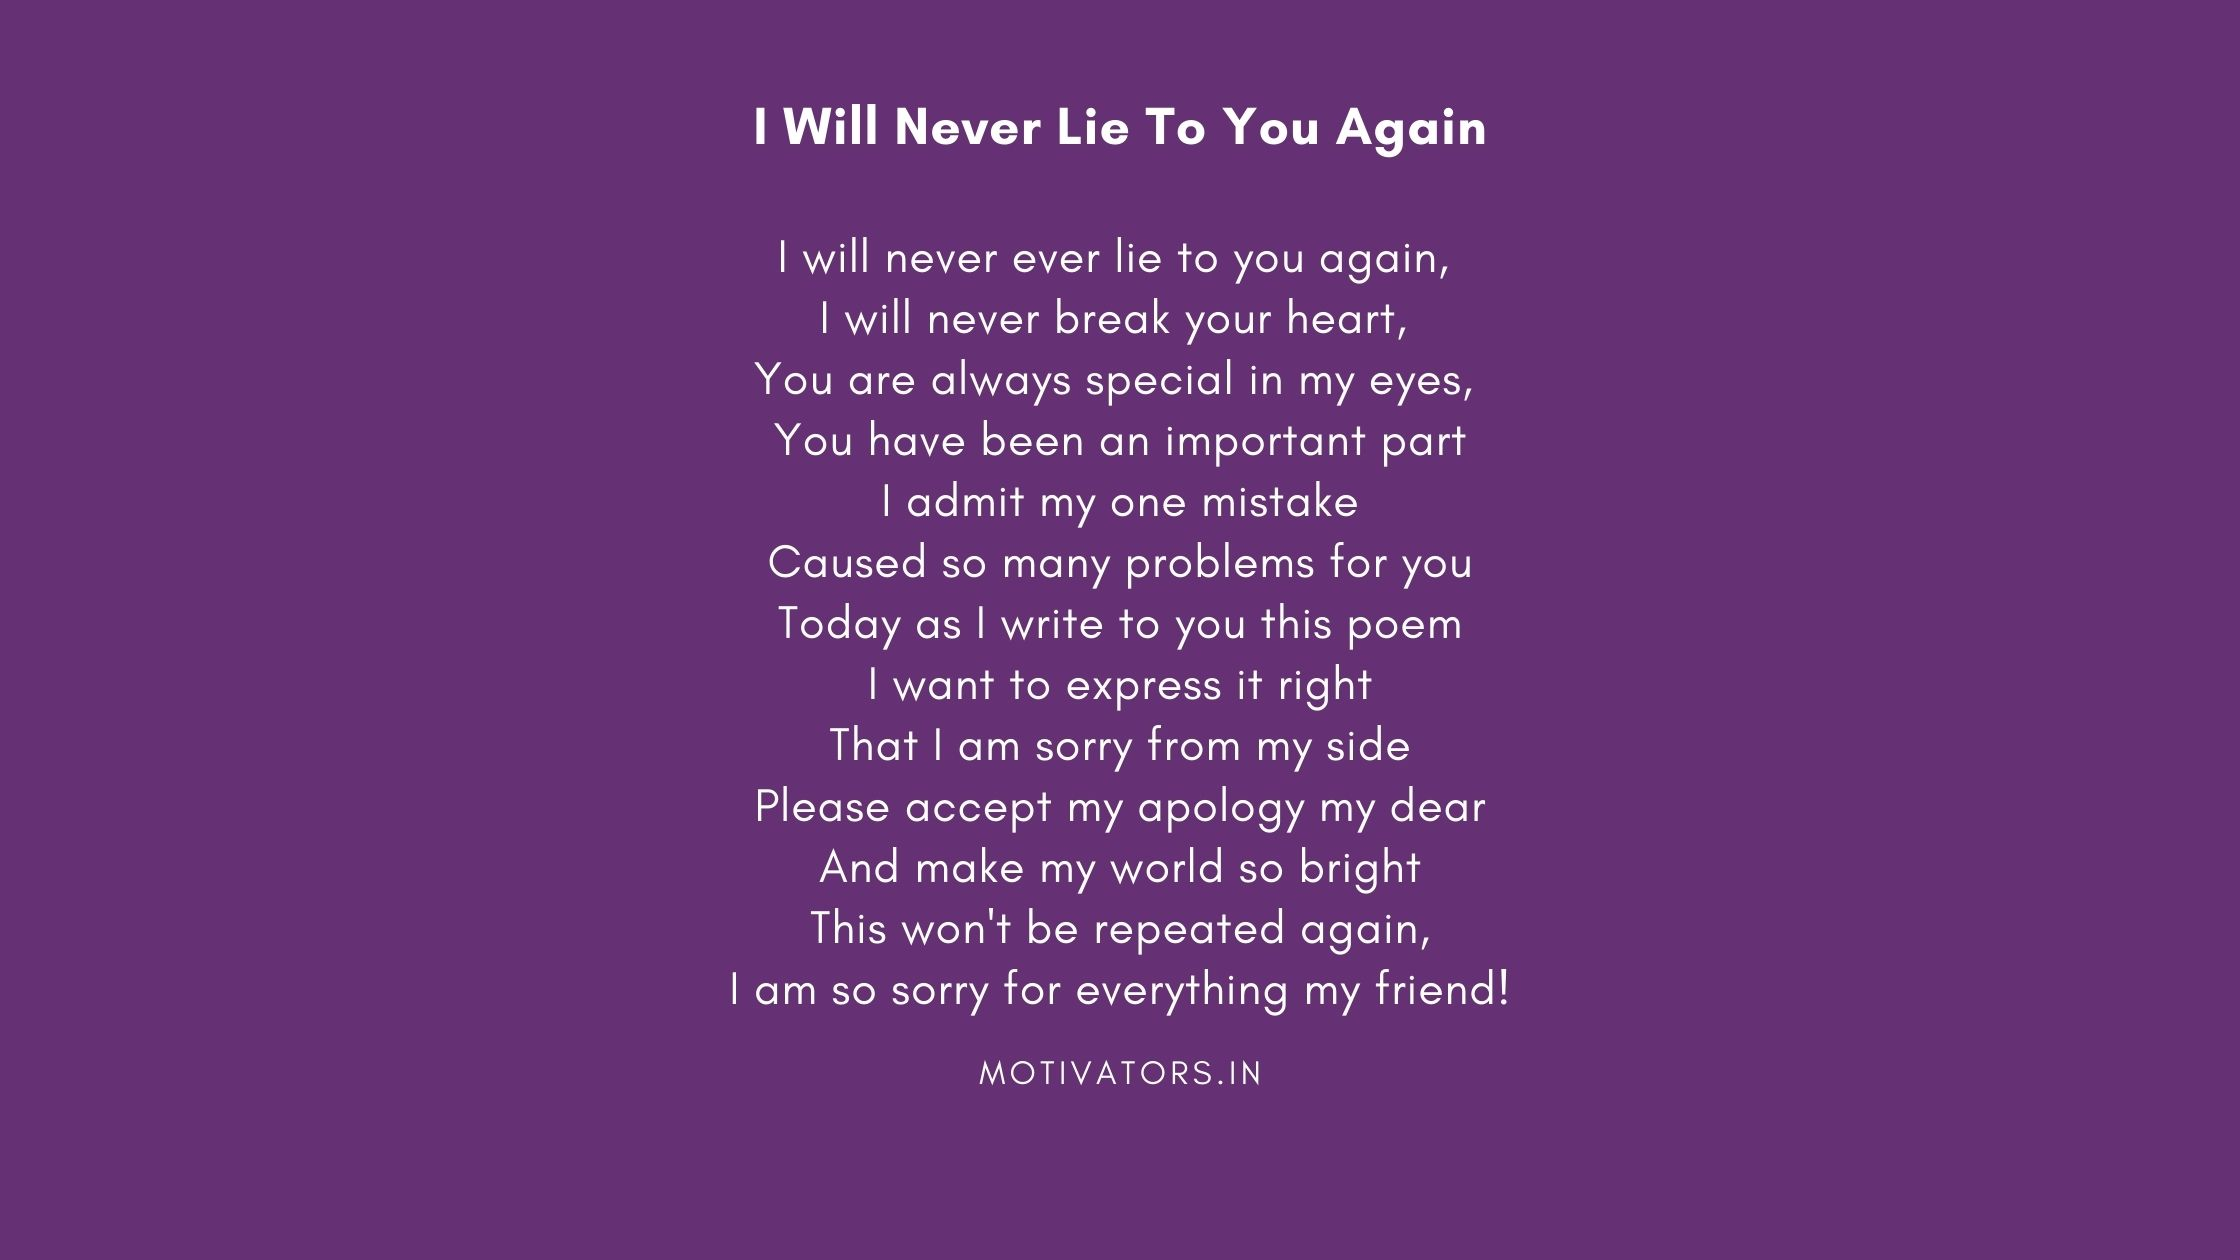 I Will Never Lie To You Again